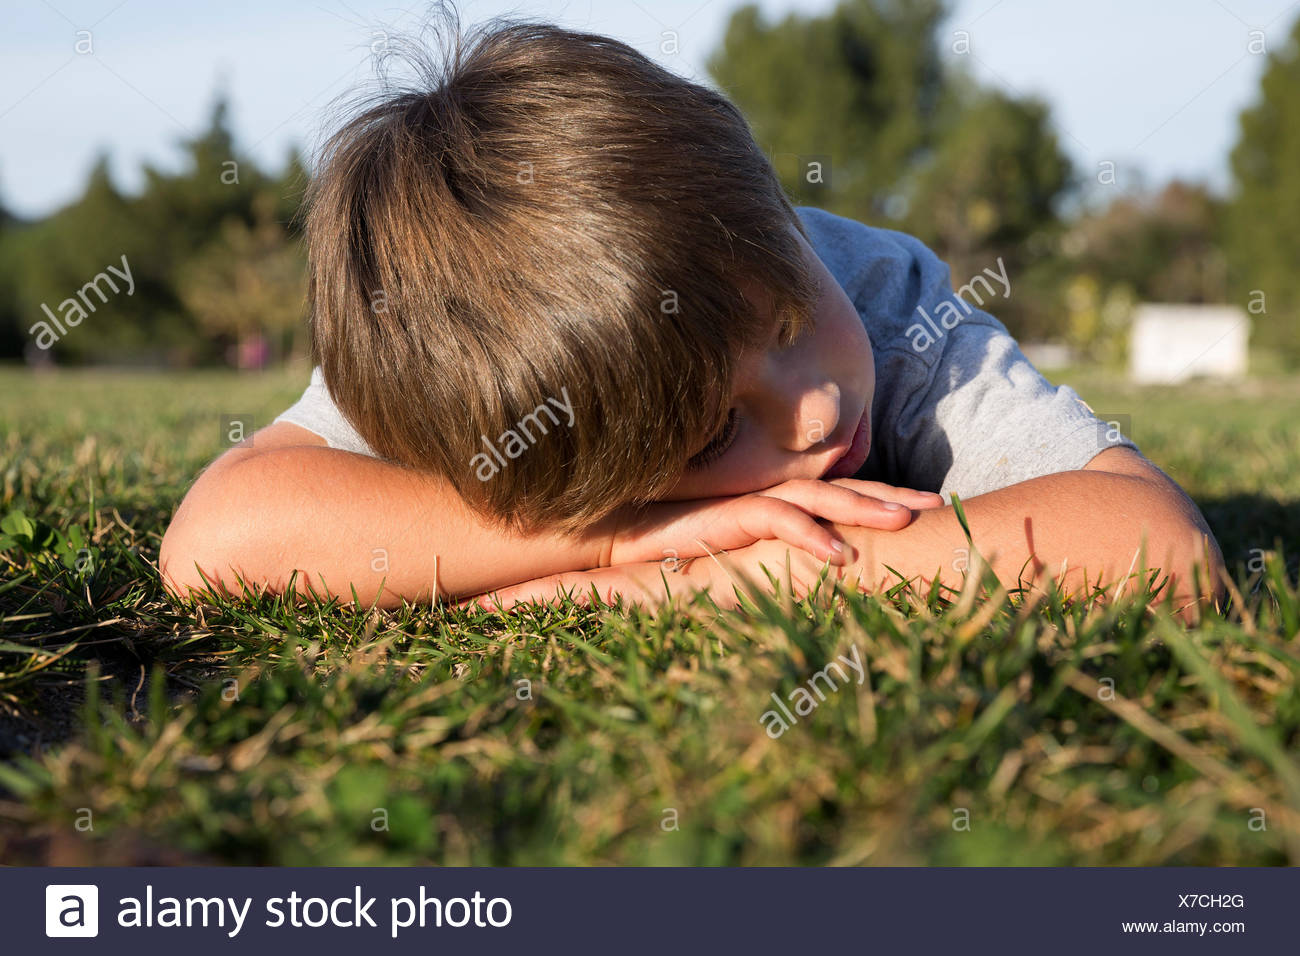 Sullen boy with head down lying on park grass Stock Photo